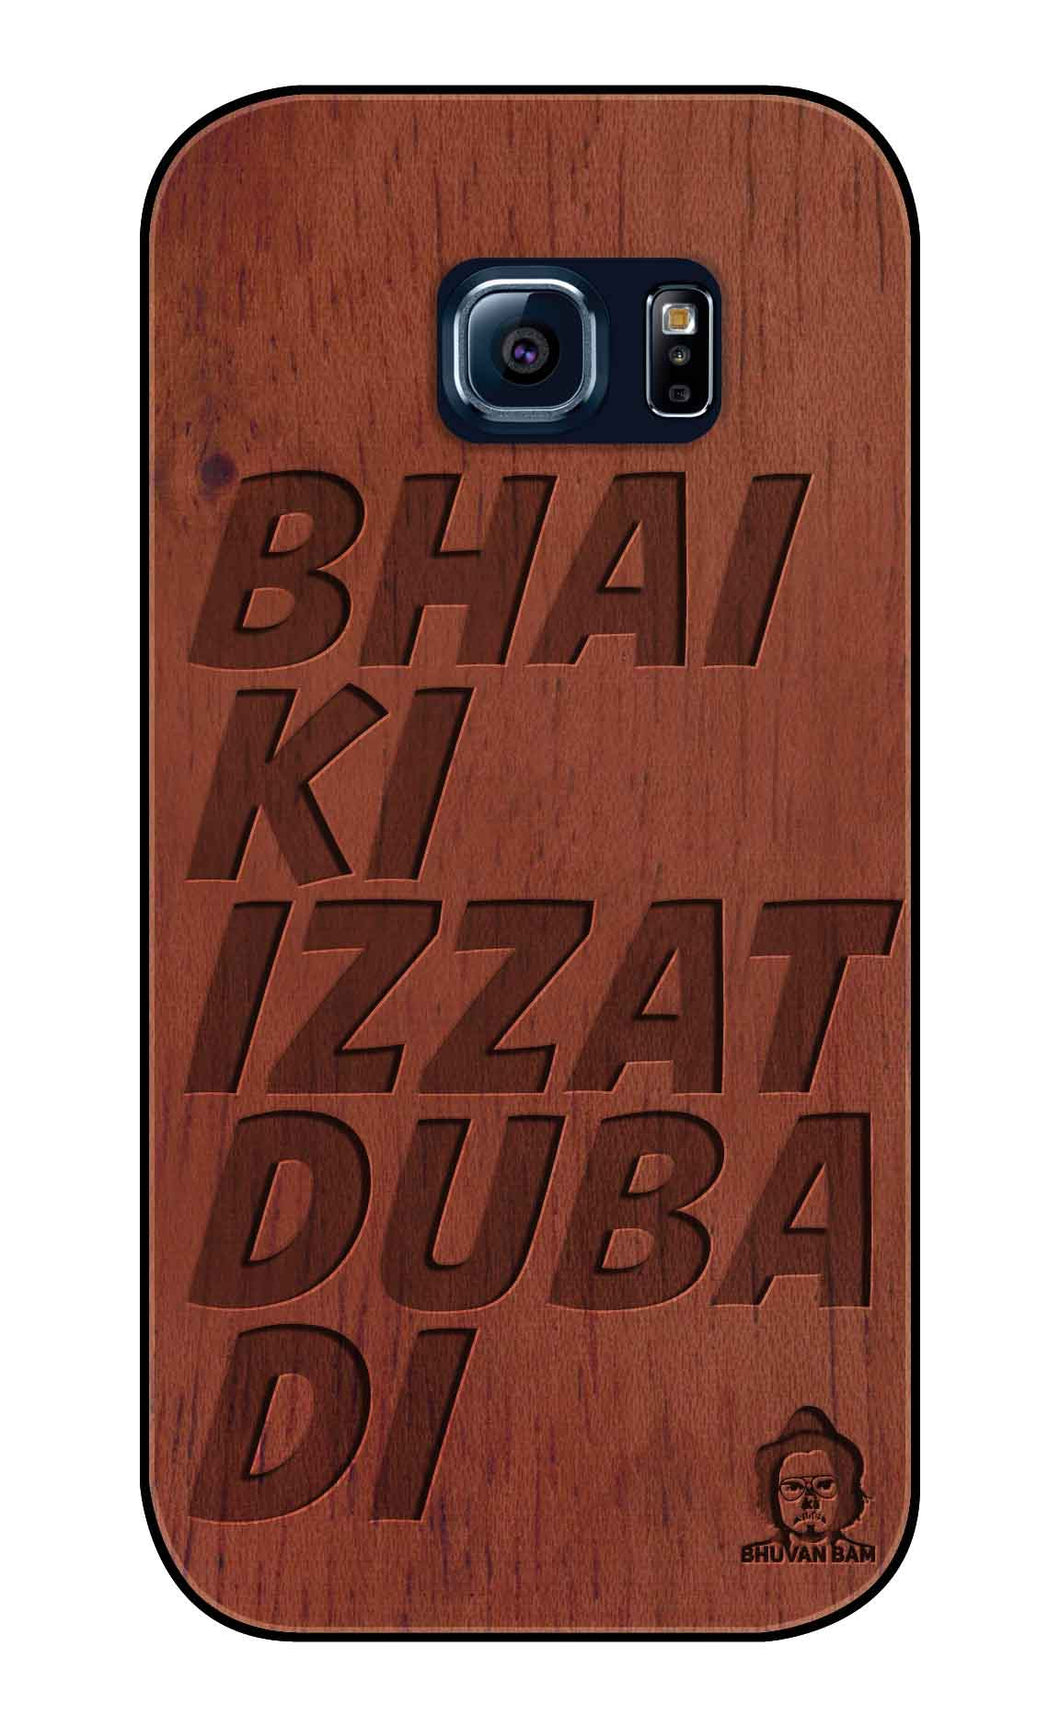 Rose Wood Izzat Edition For samsung galaxy S6 Edge